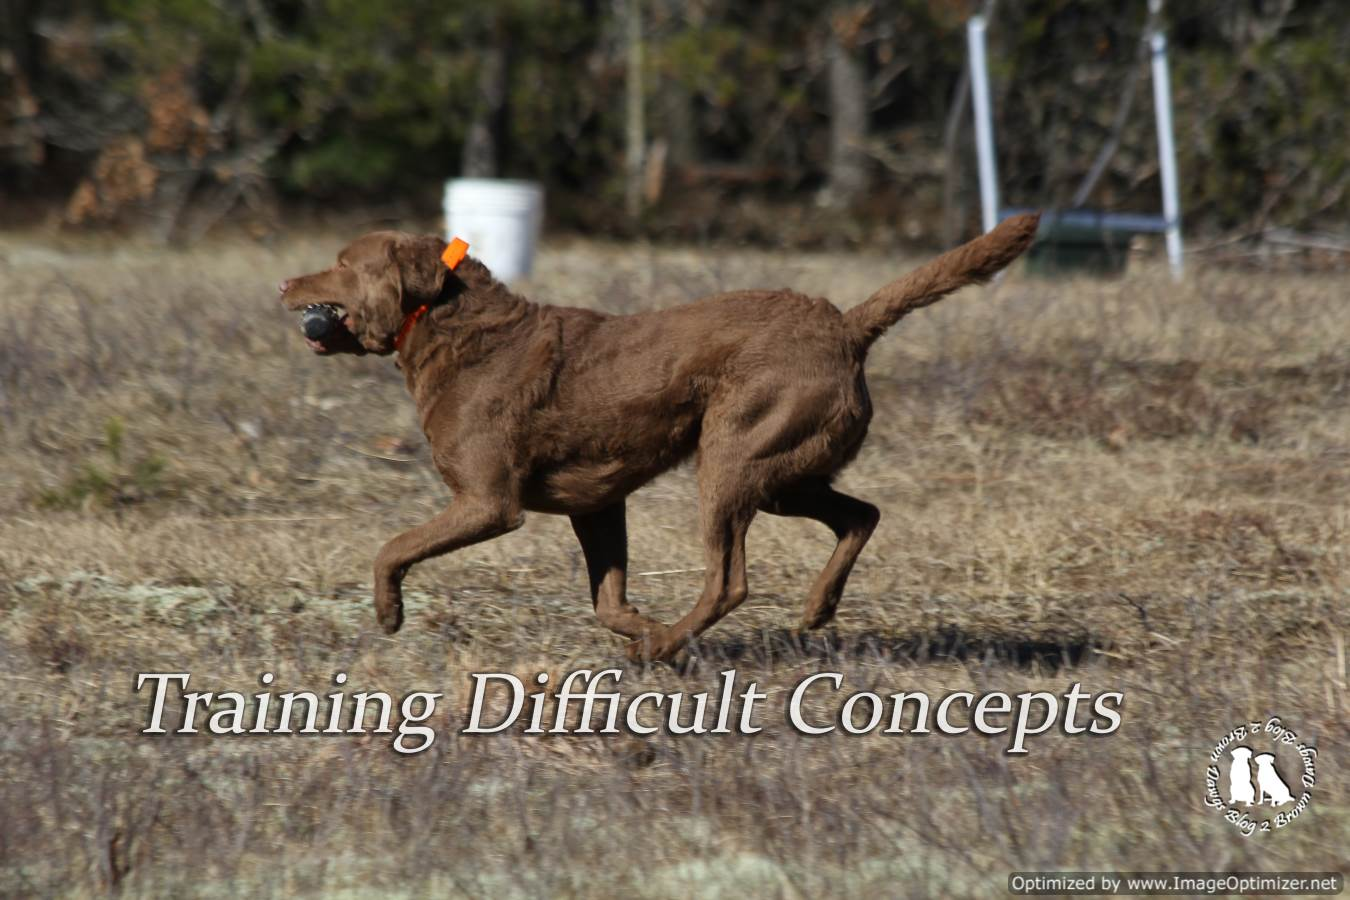 Training Difficult Concepts